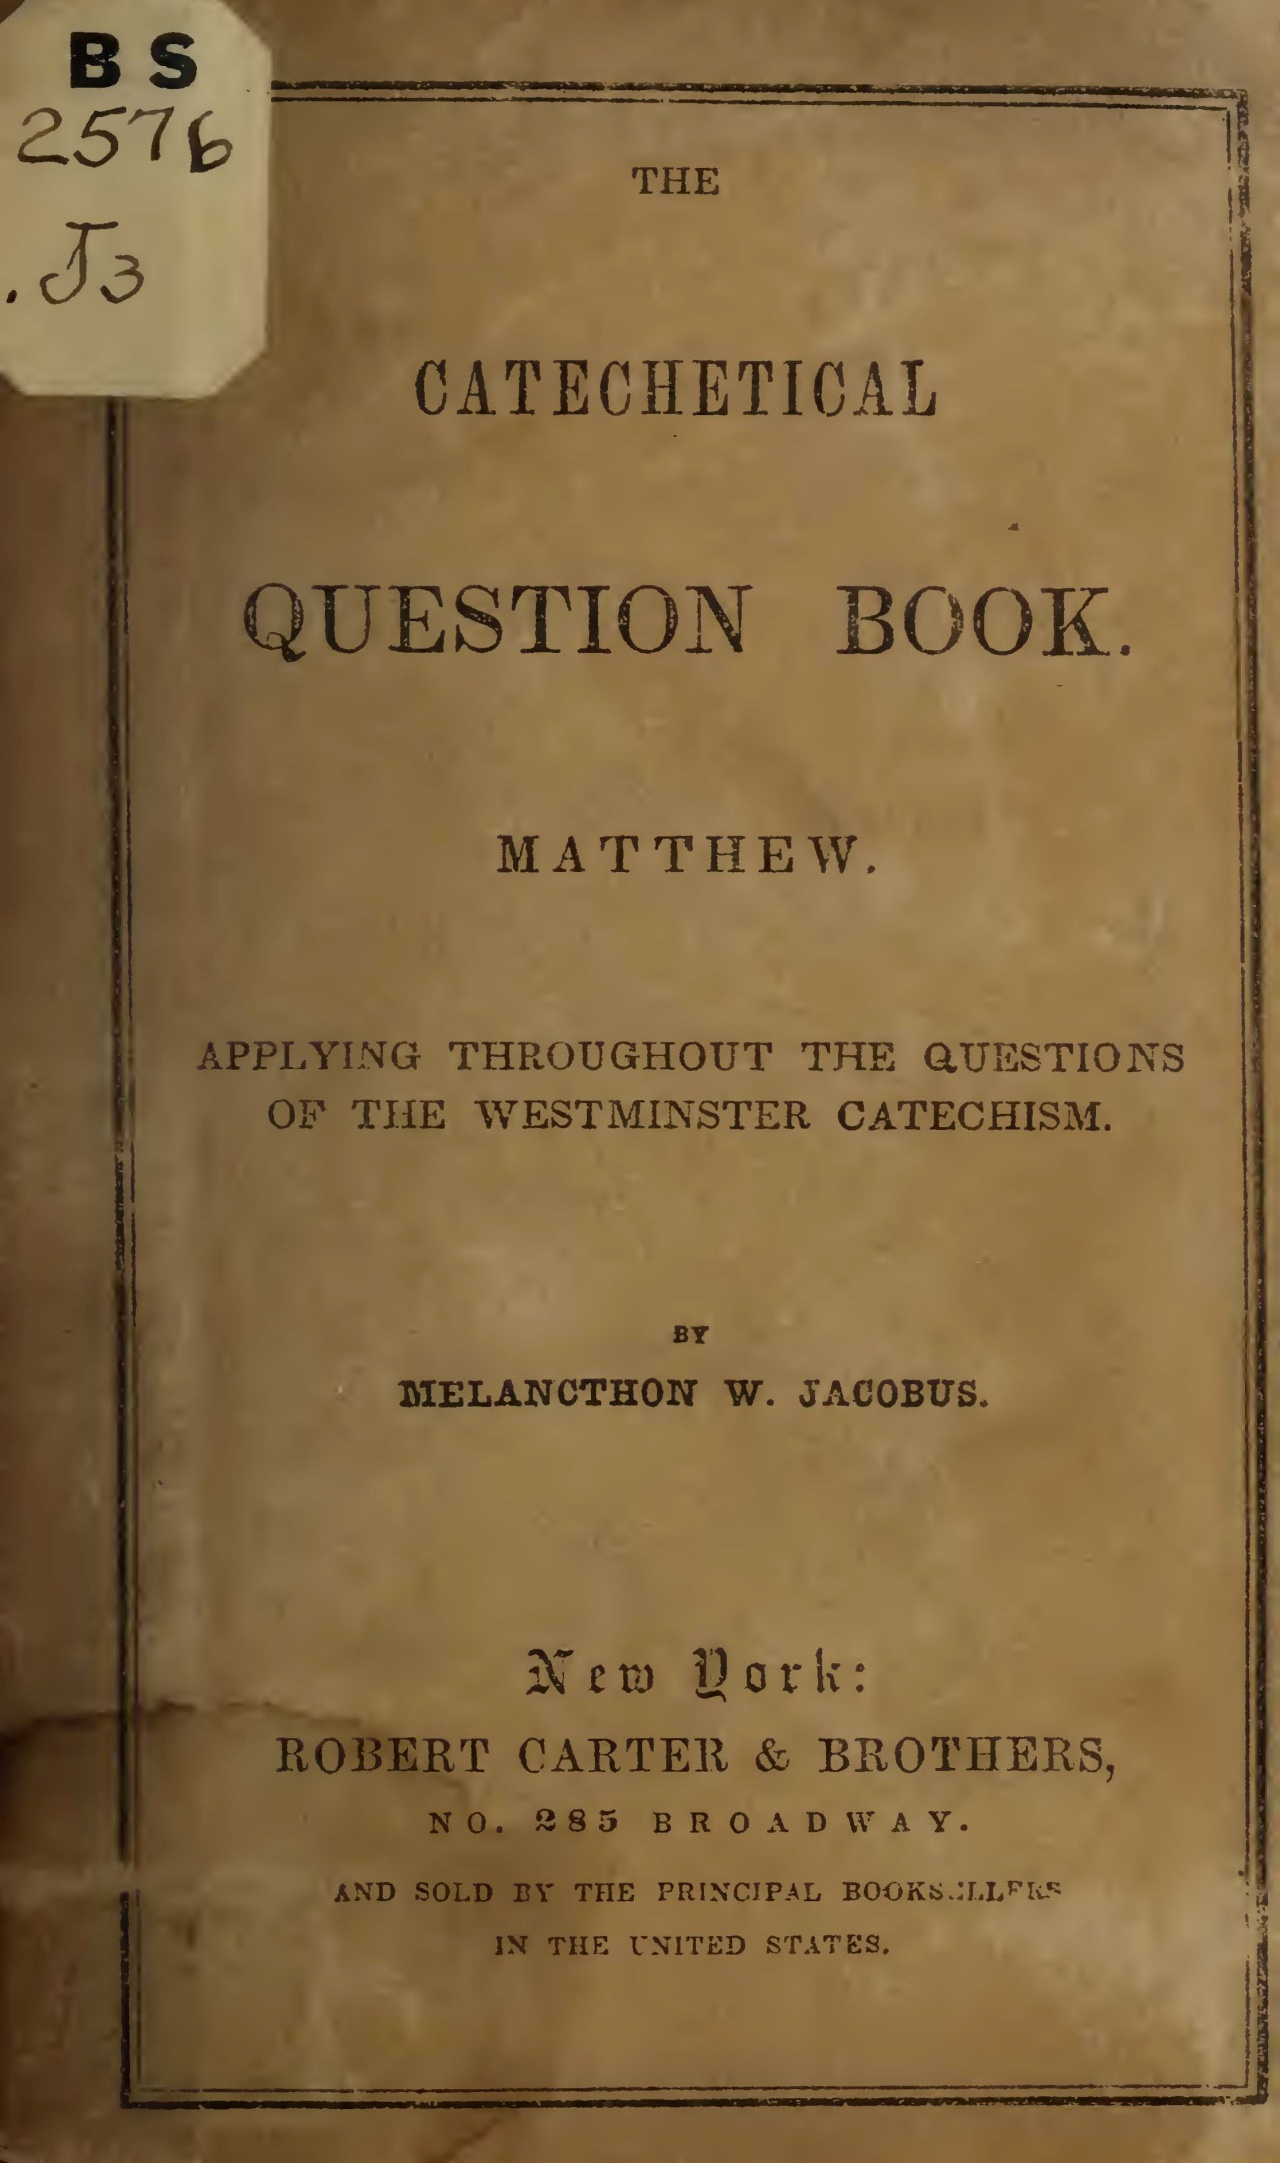 Jacobus, Sr., Melancthon Williams, The Catechetical Question Book, Matthew Title Page.jpg